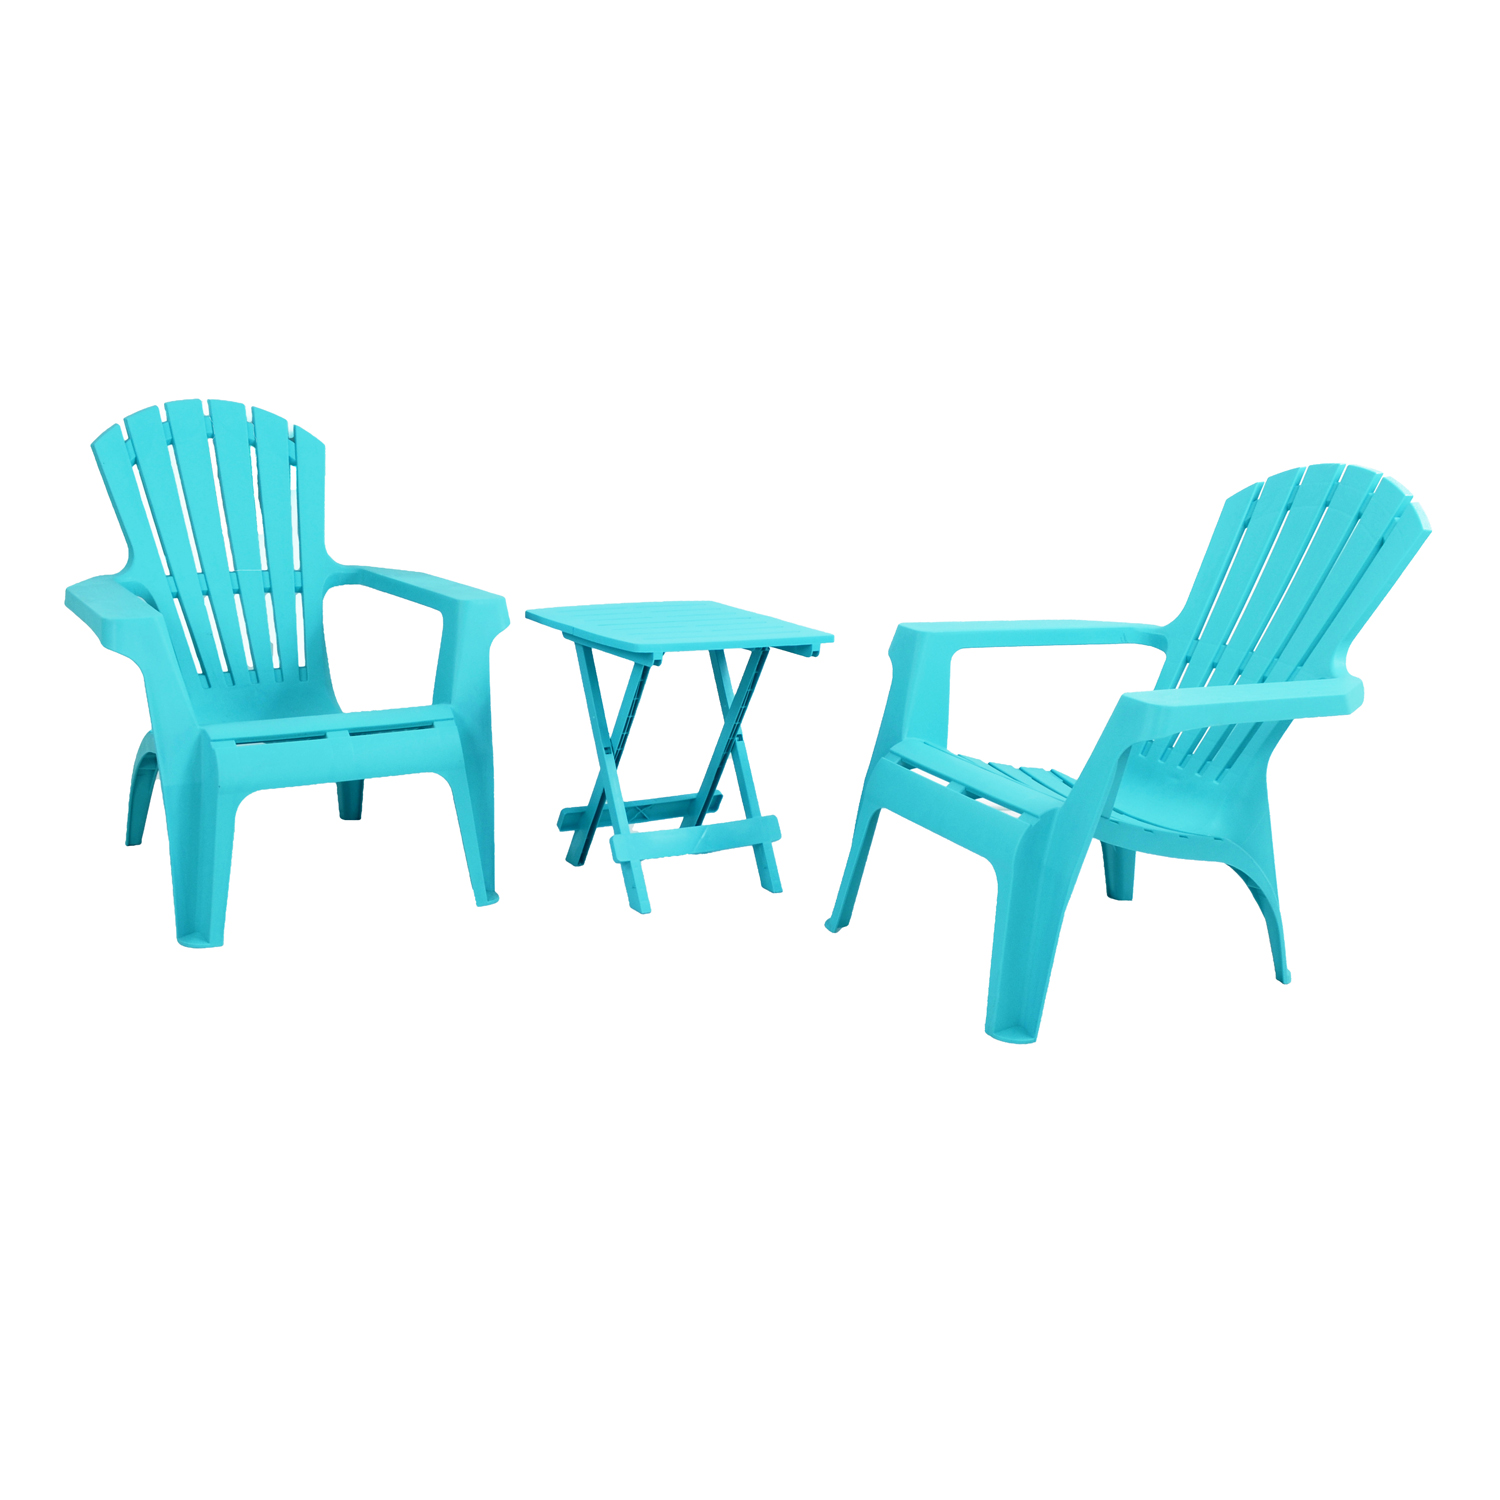 BARI SIDE TABLE WITH 2 ANDRIA CHAIRS SET BLUE